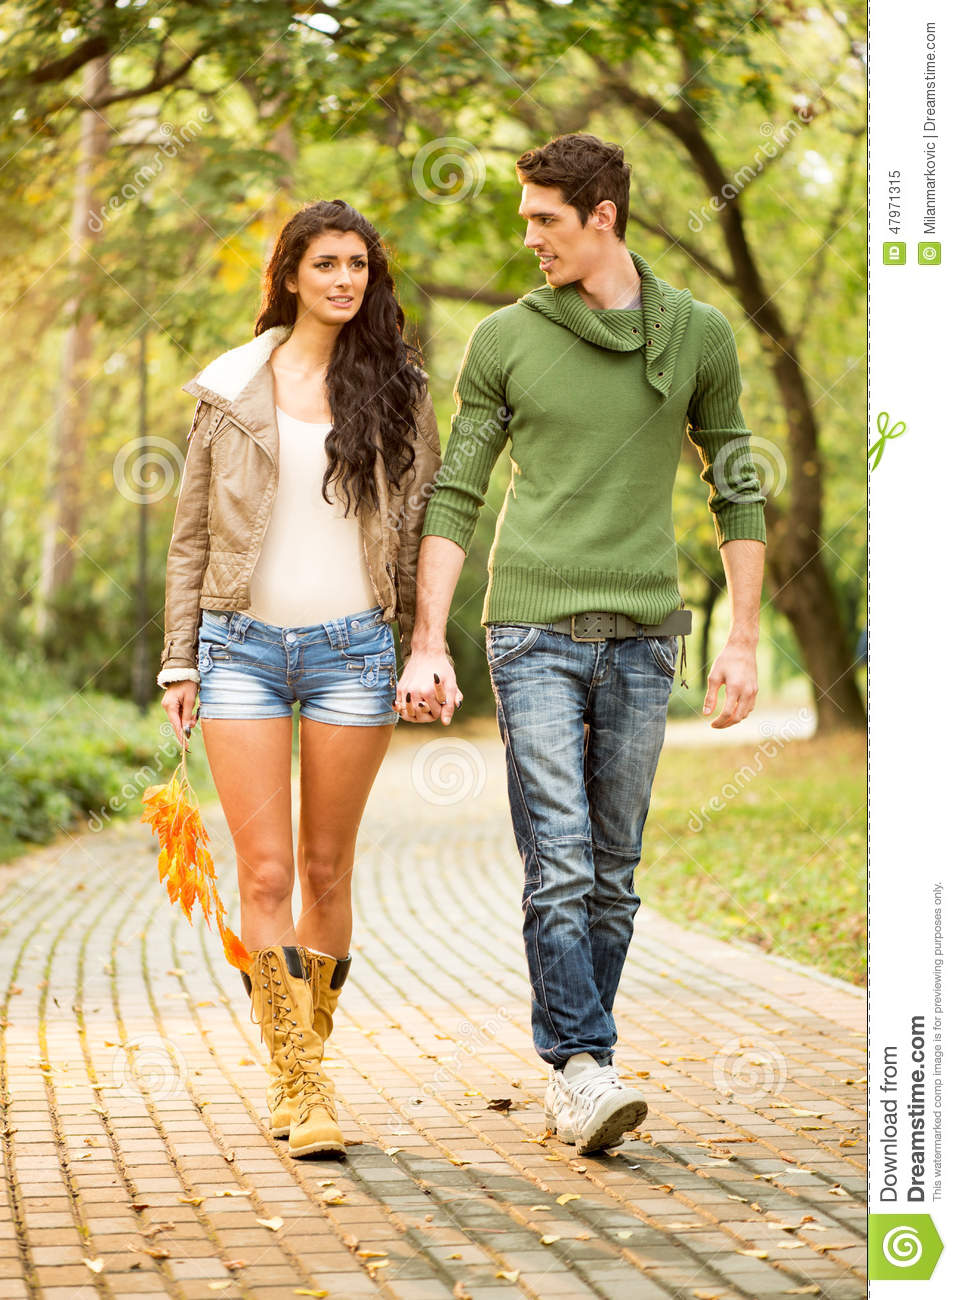 Walk In The Park Stock Photo - Image: 47971315